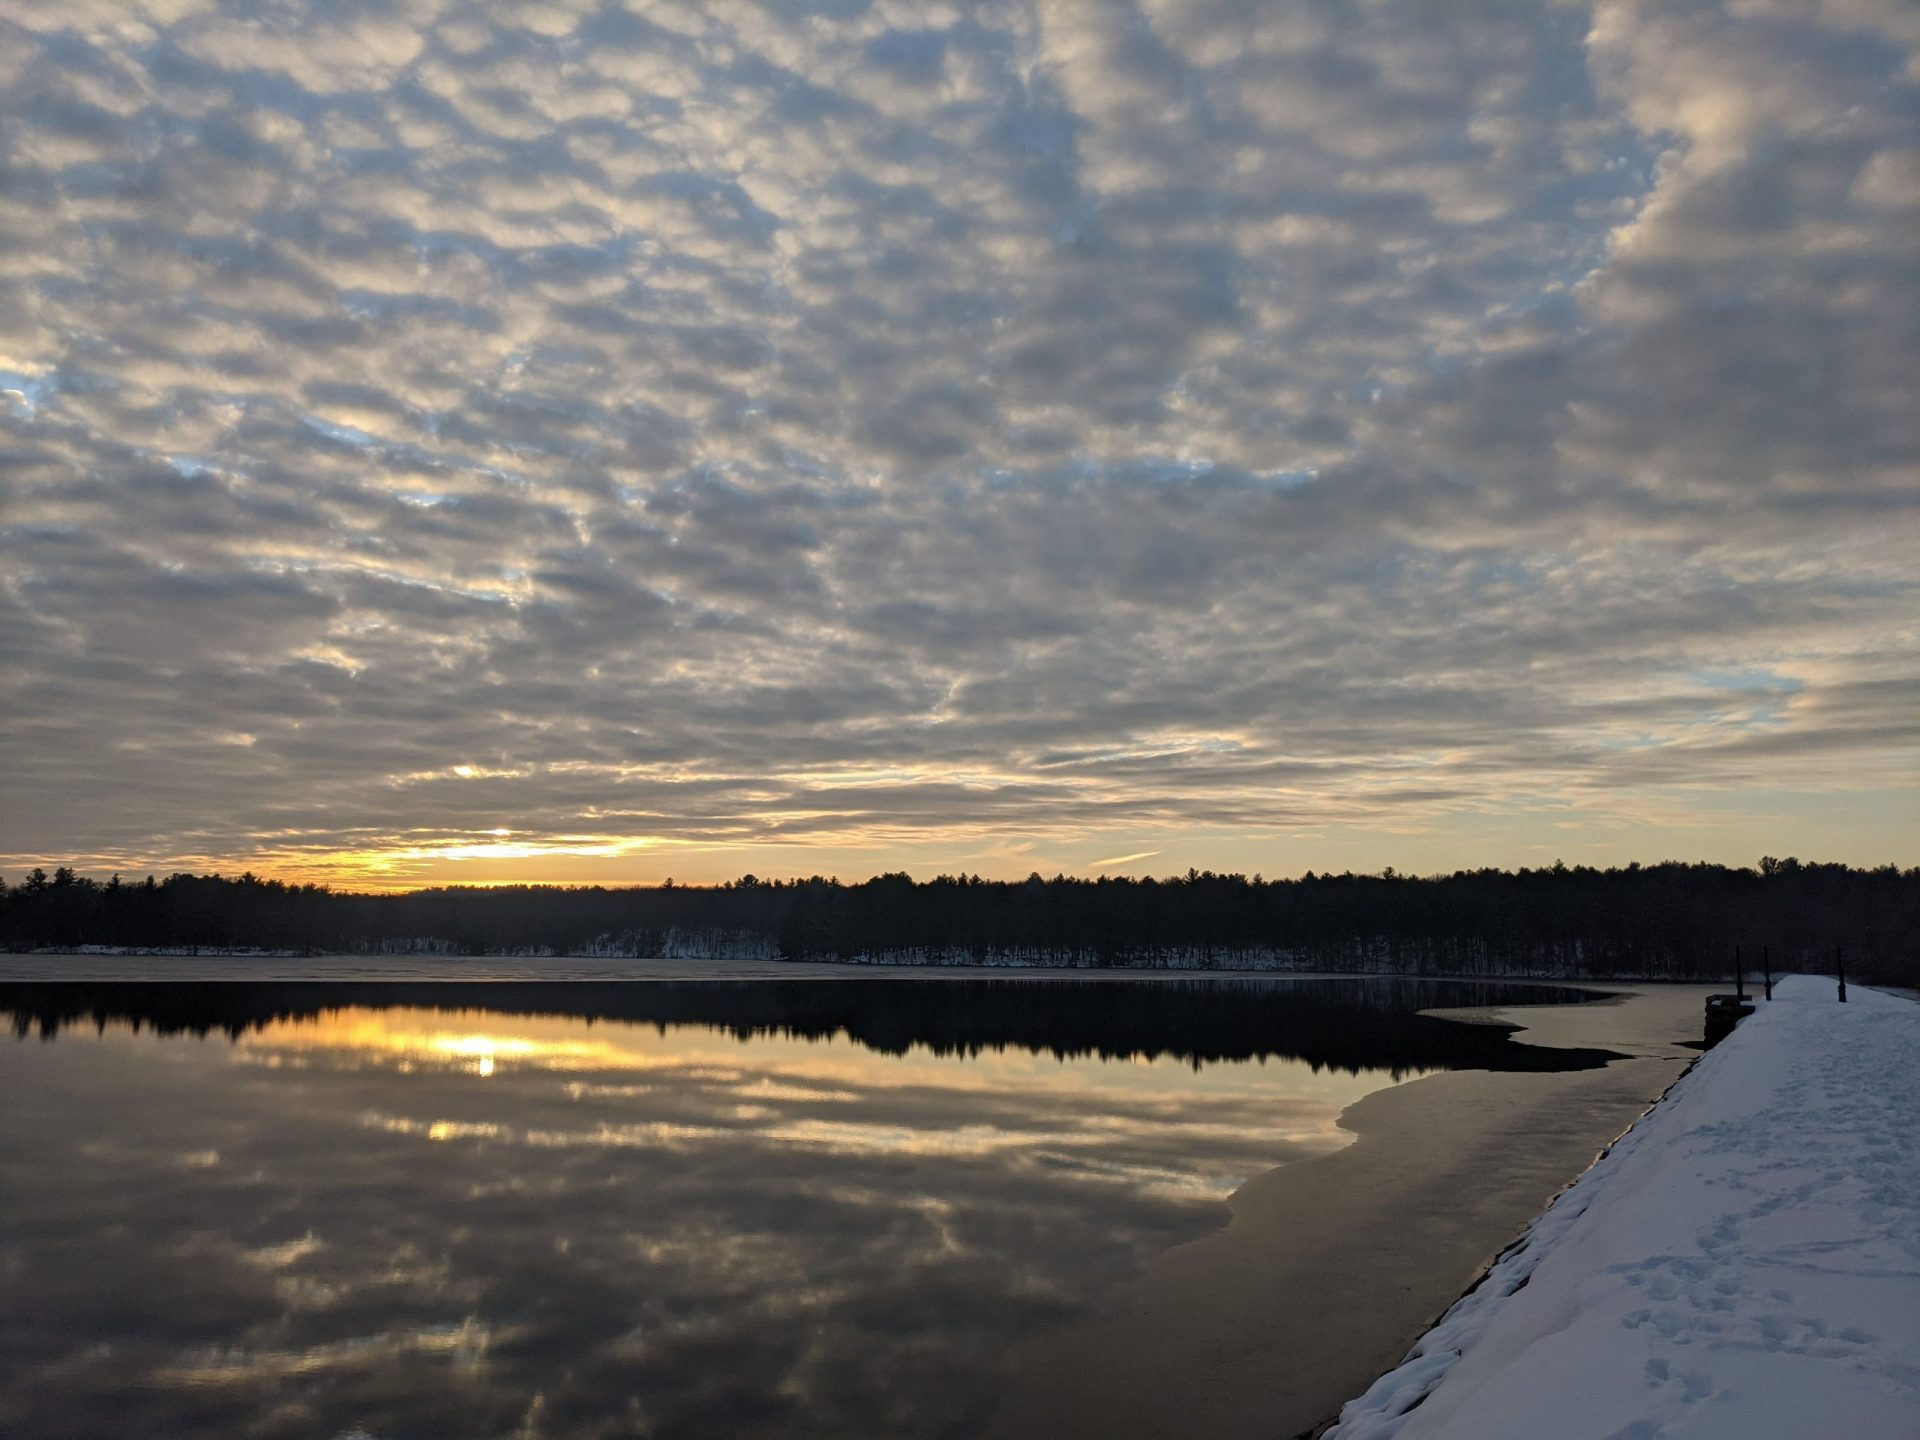 Sunset and clouds reflected in reservoir - December 2020 - Ashland State Park